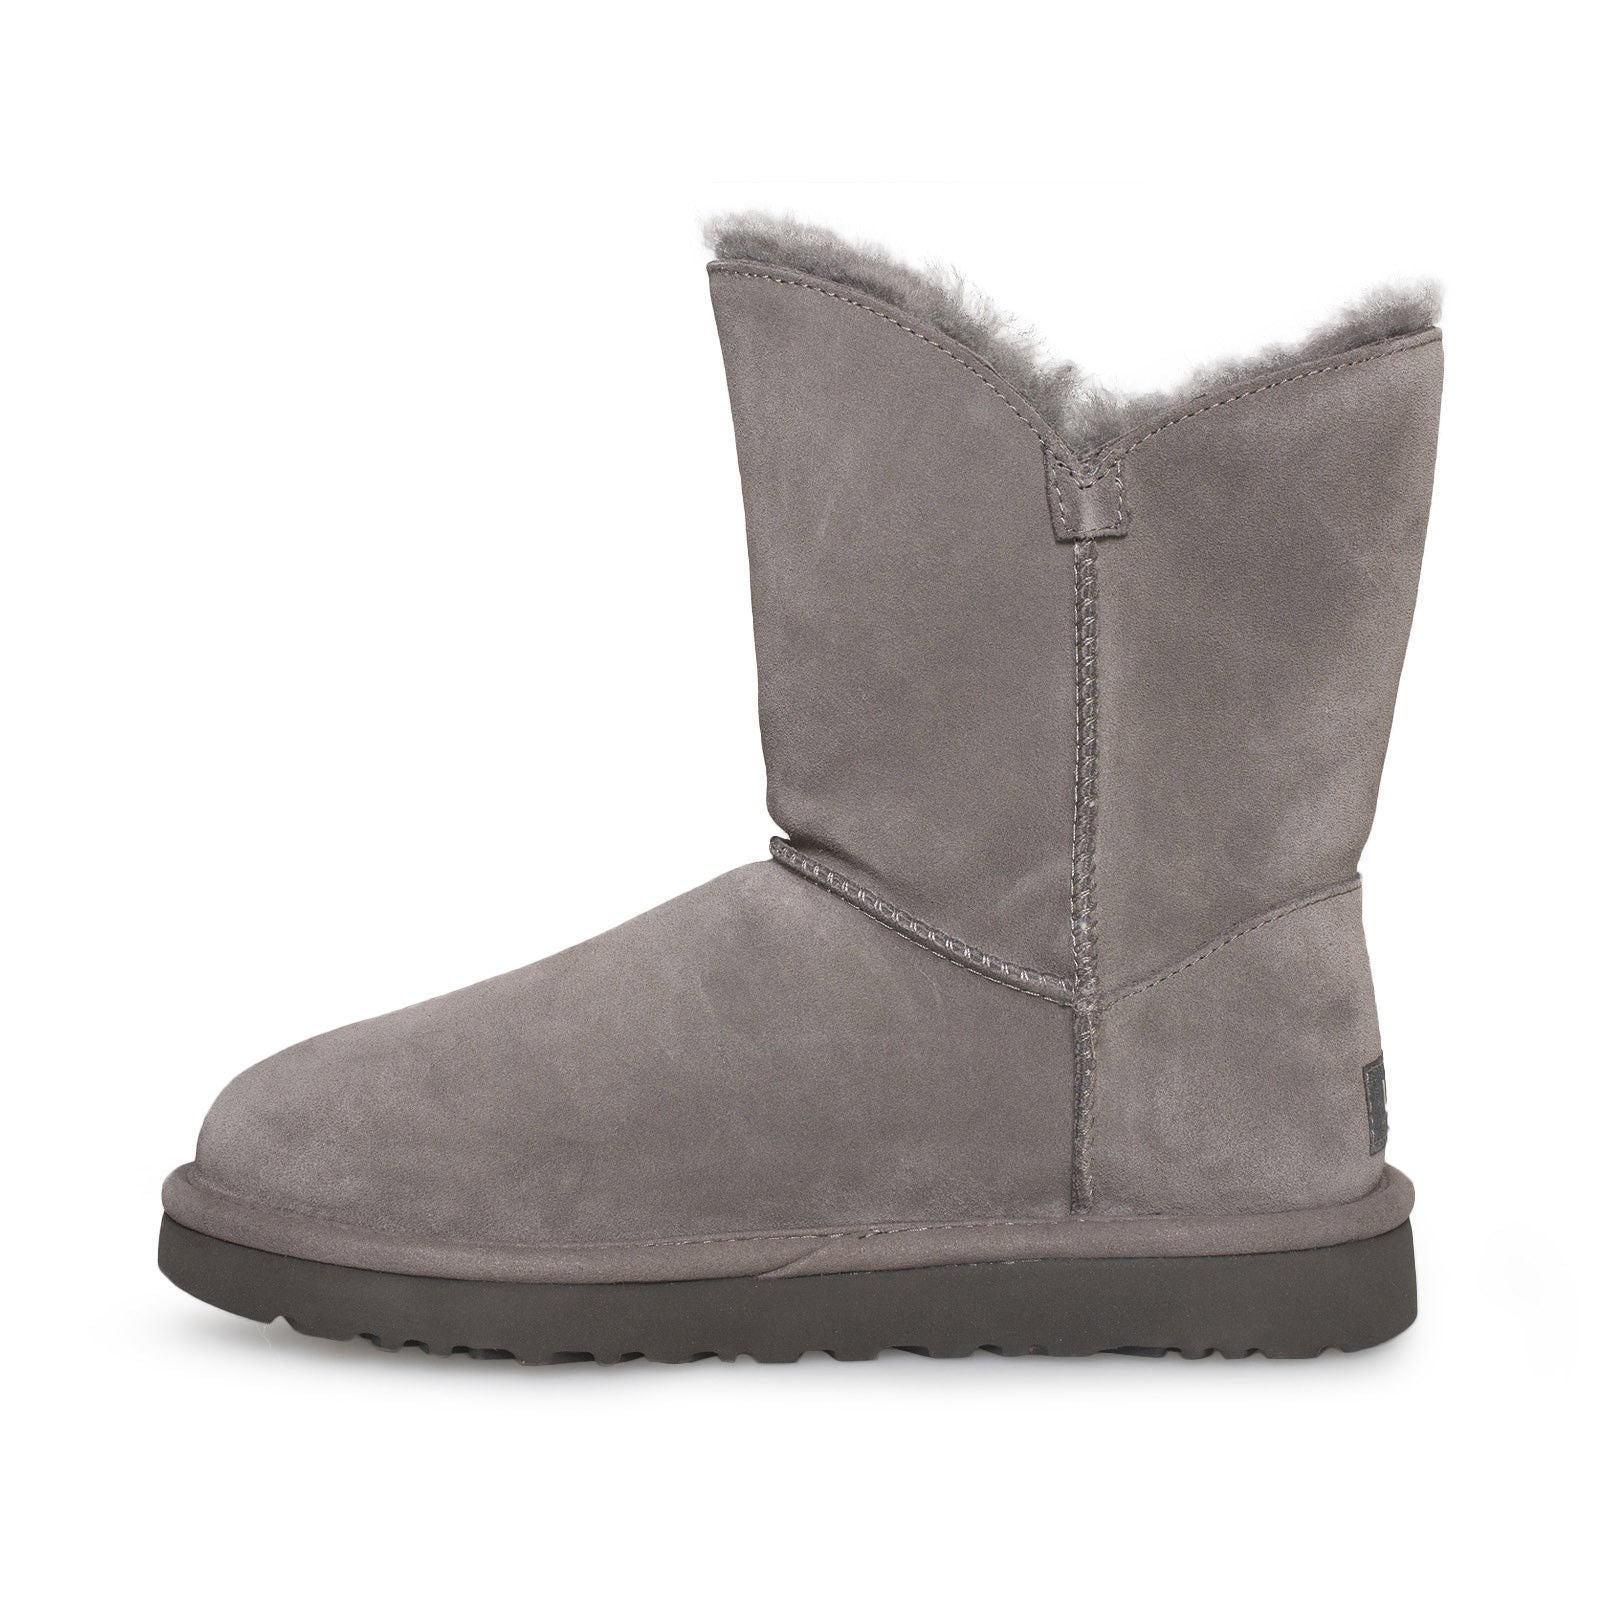 54e801f5499 UGG Constantine Charcoal Boots